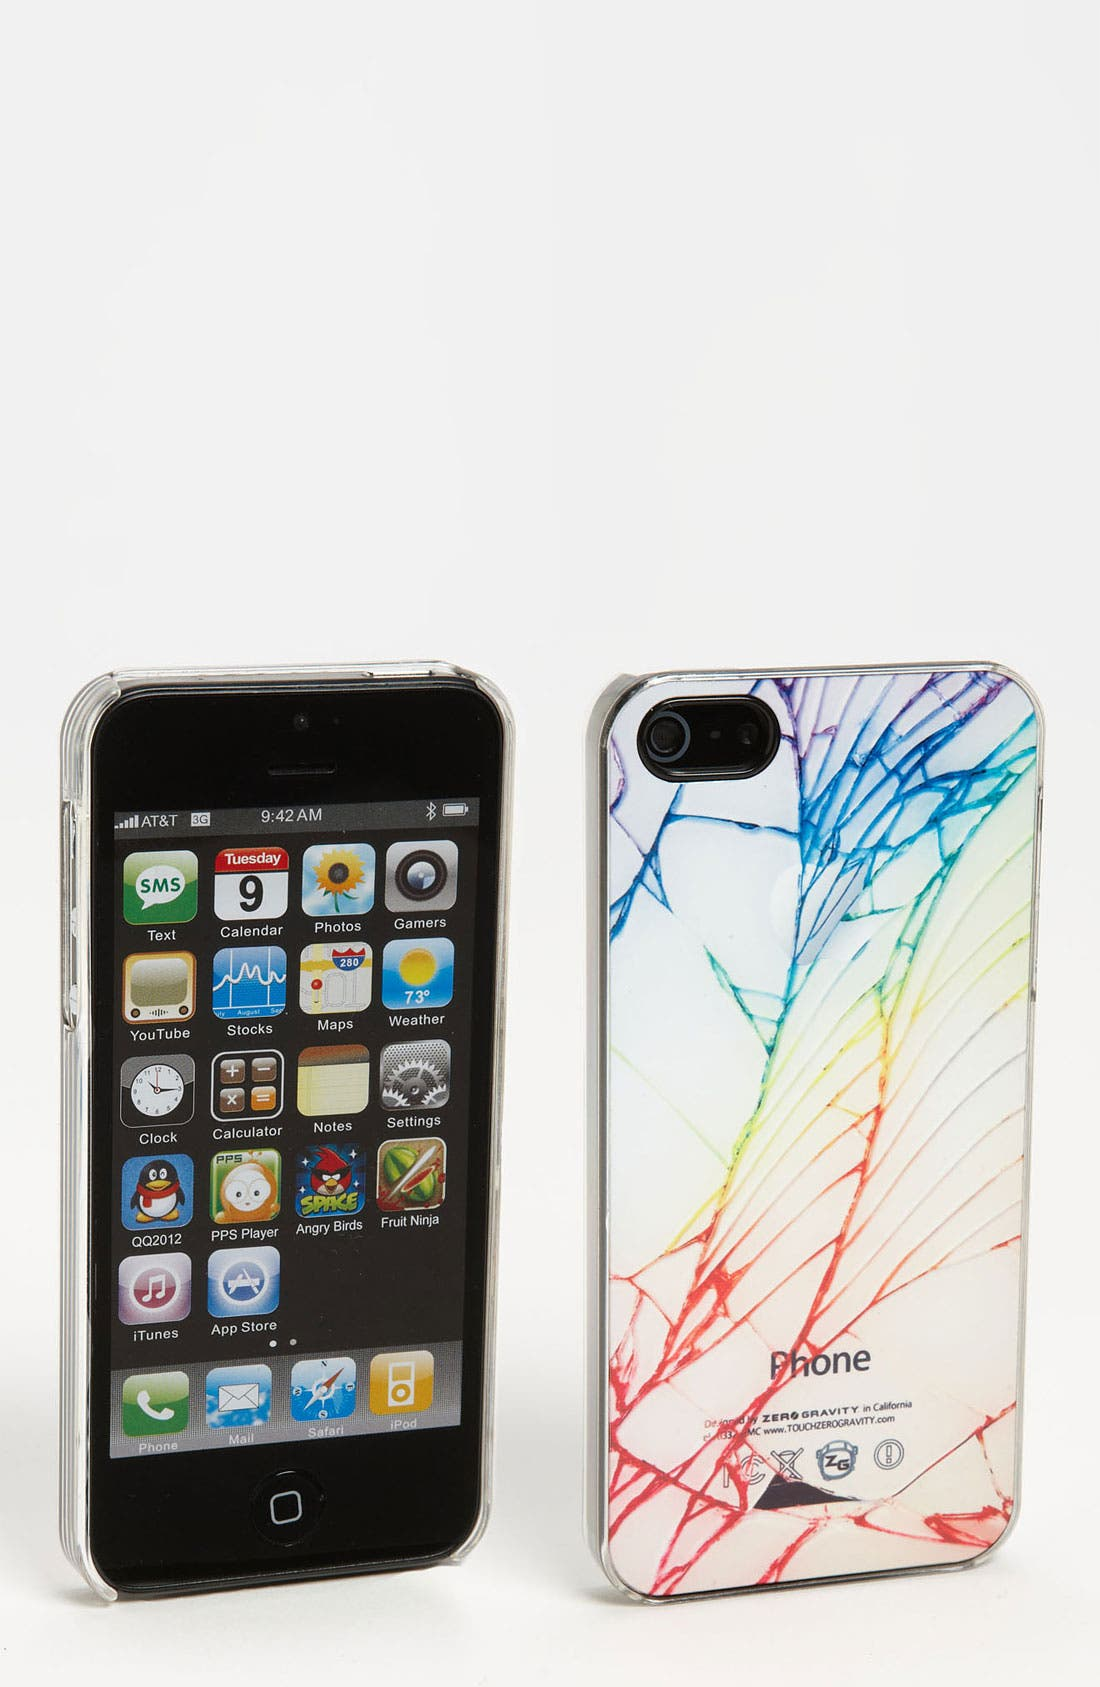 Main Image - ZERO GRAVITY 'Cracked' iPhone 5 Case